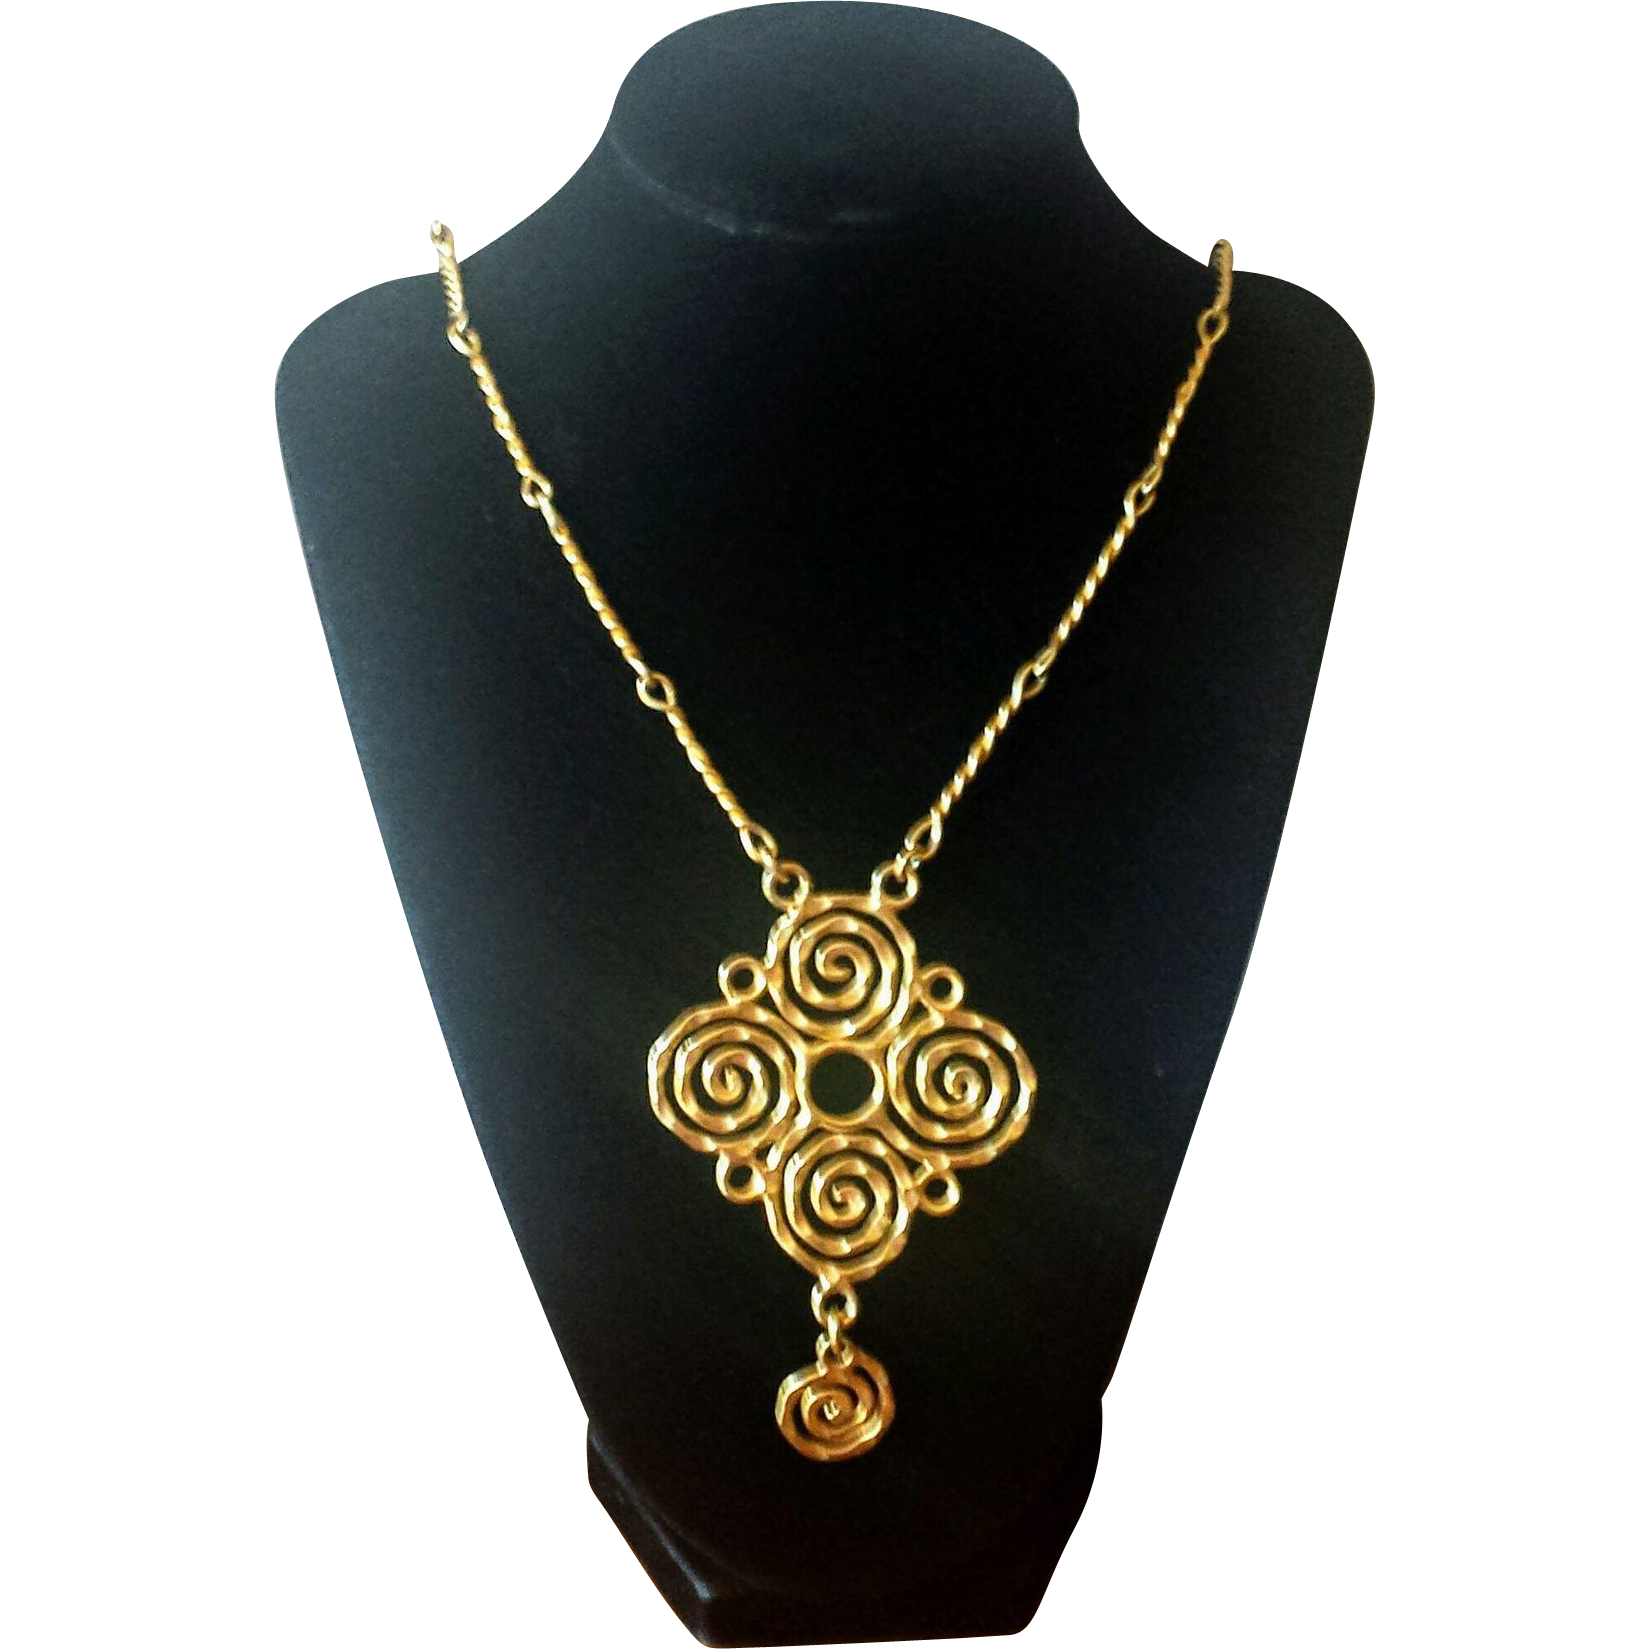 Vintage 1970s Hammered Metal Long Swirl Pendant Necklace